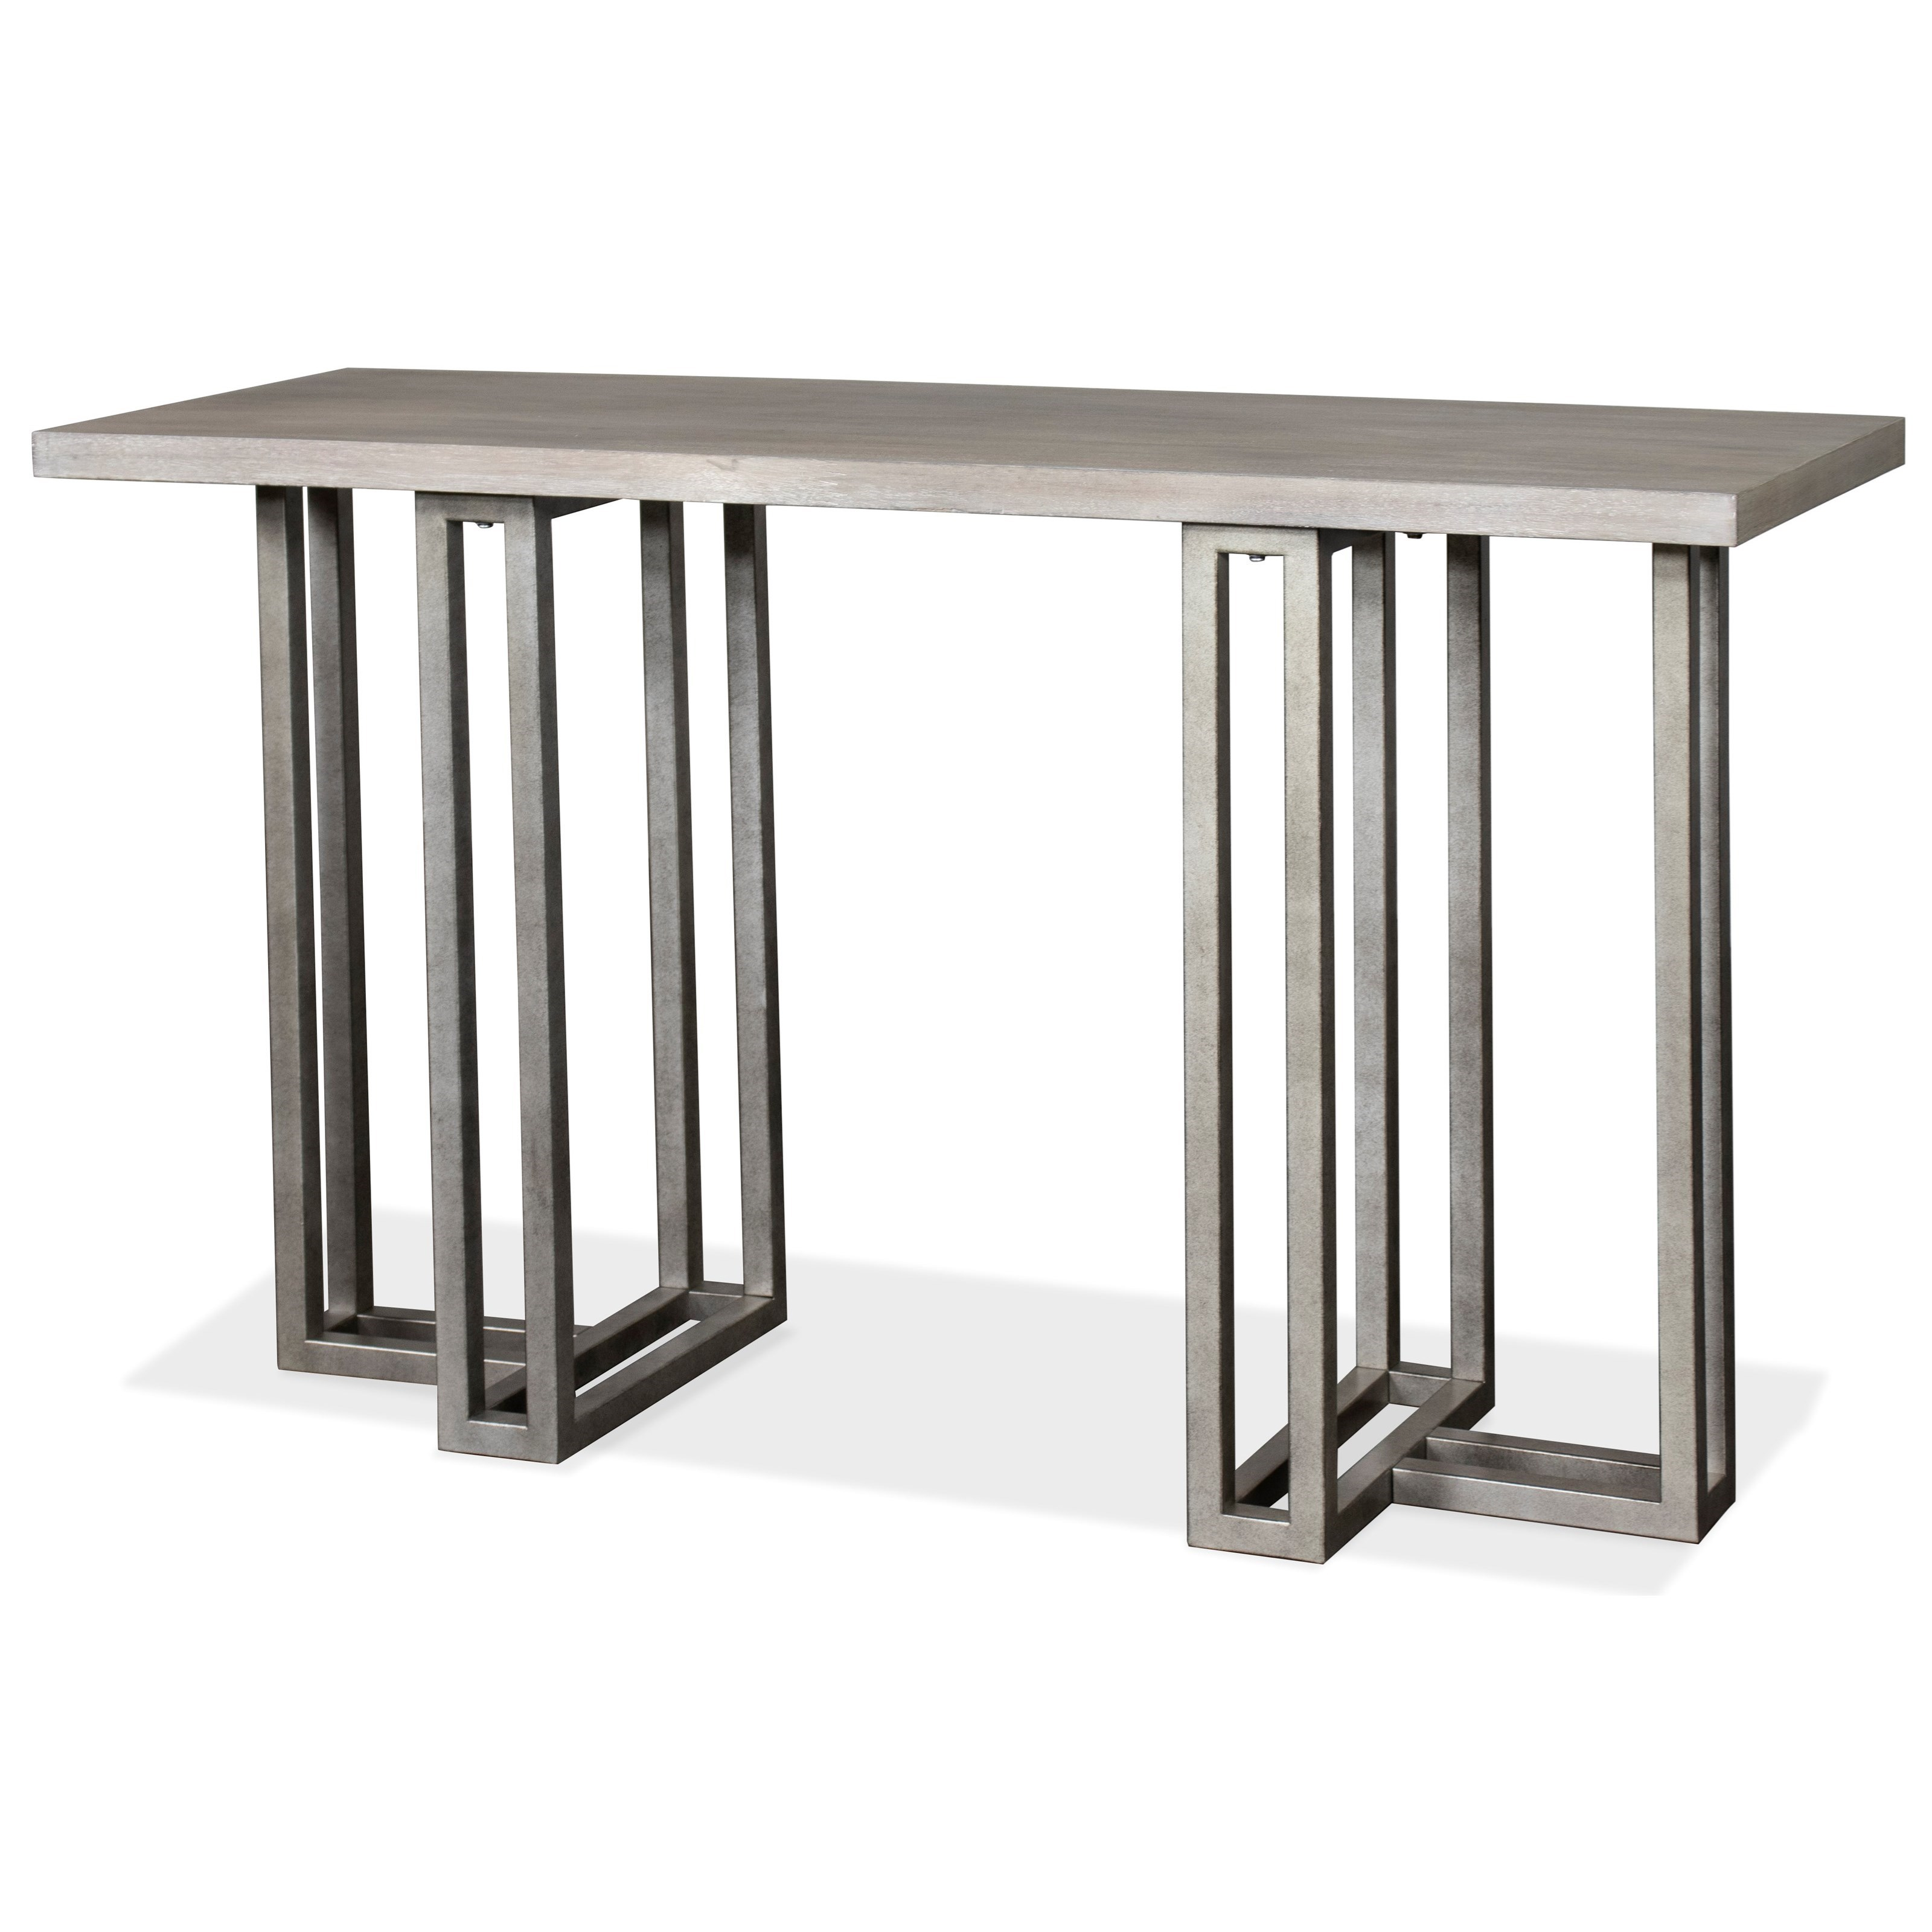 Adelyn Rectangle Sofa Table by Riverside Furniture at A1 Furniture & Mattress